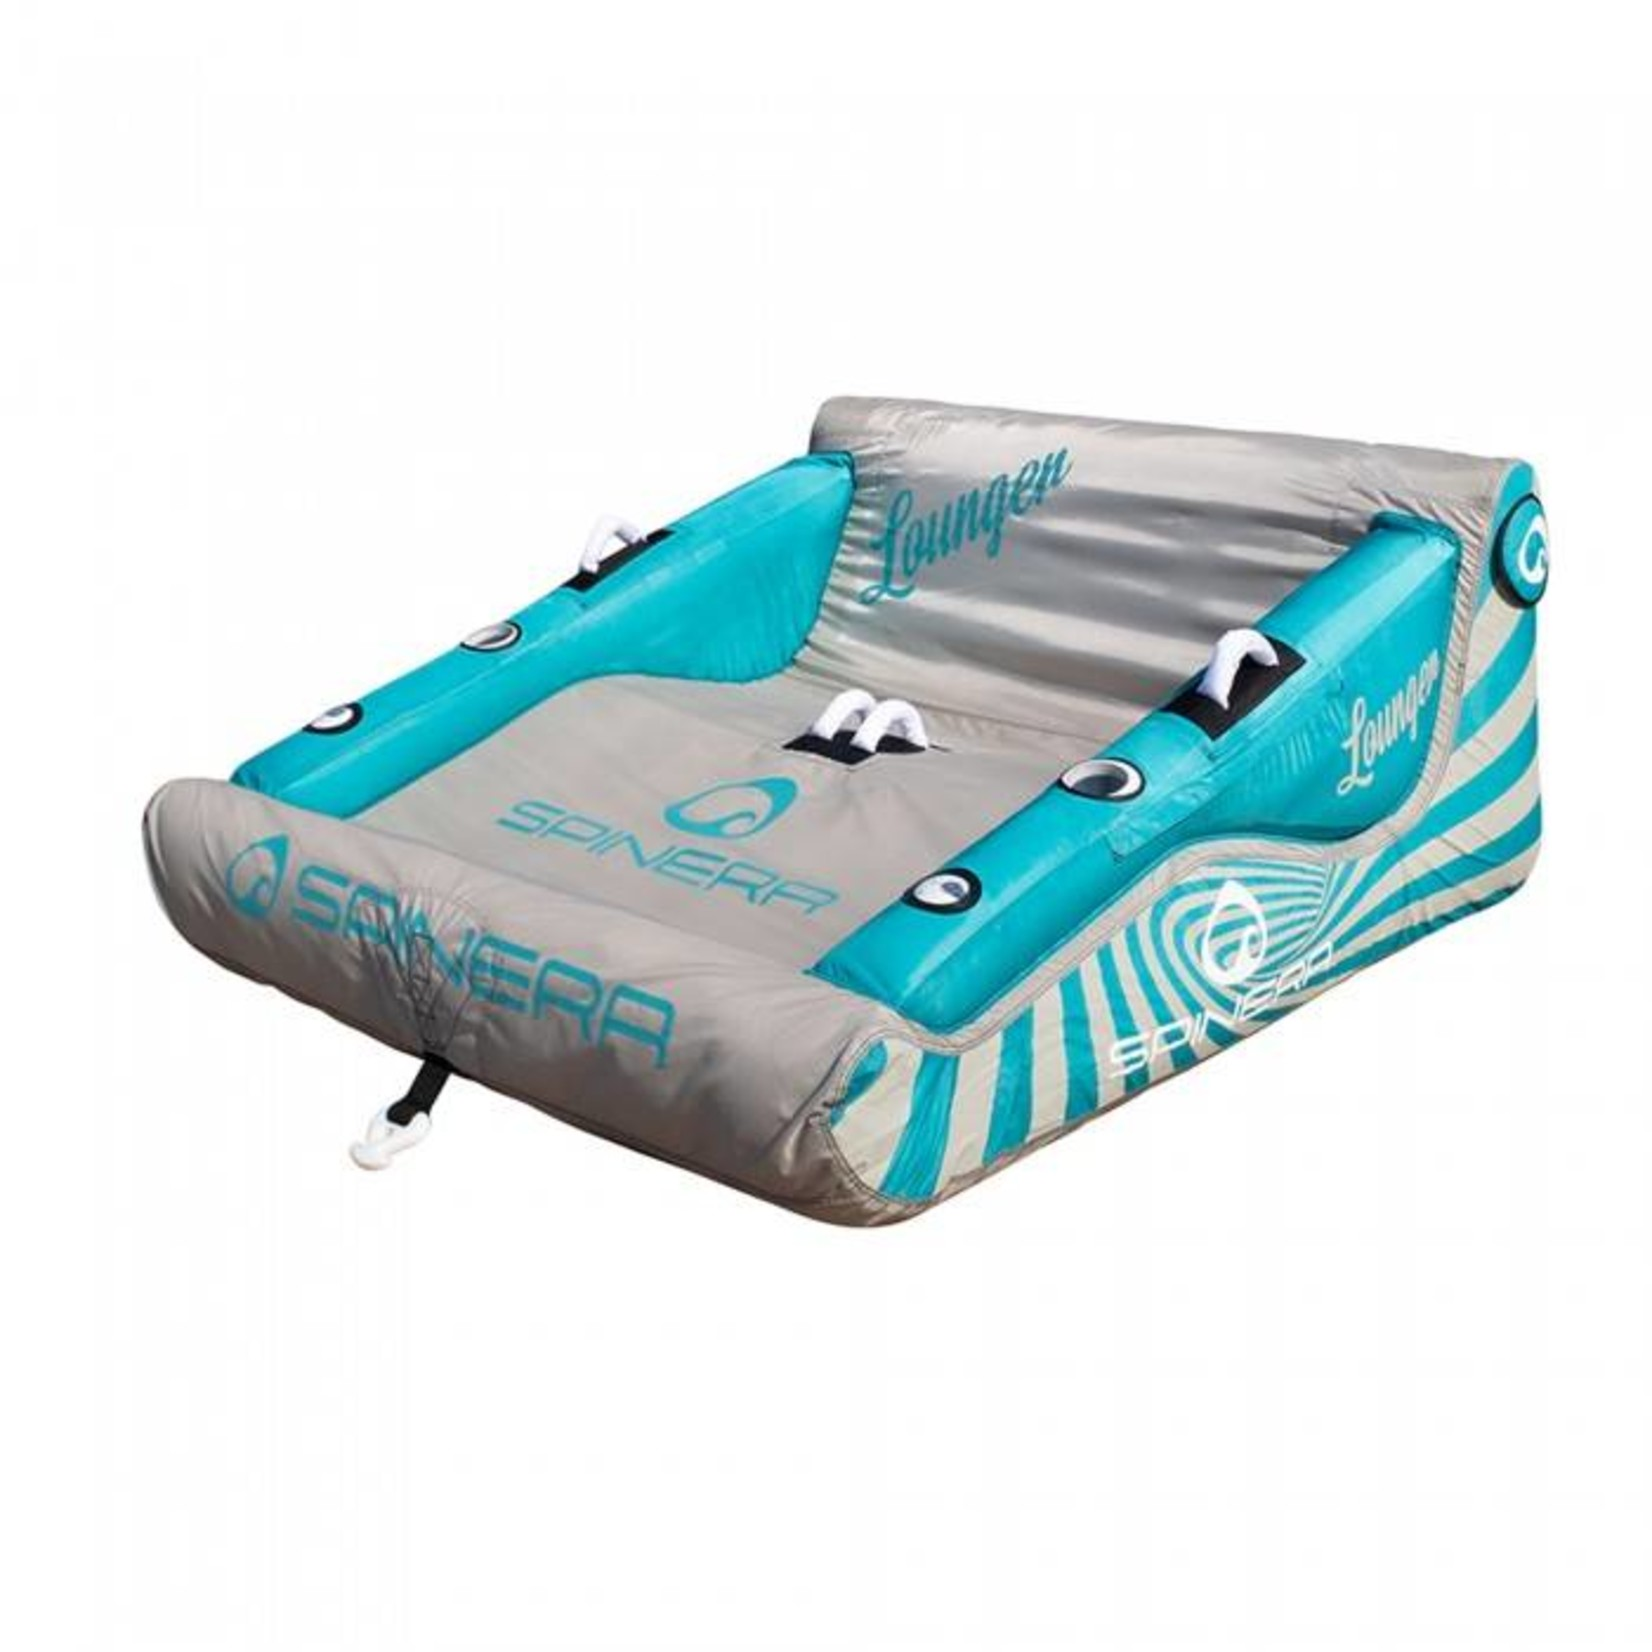 Spinera Lounger - Tweepersoons lounger